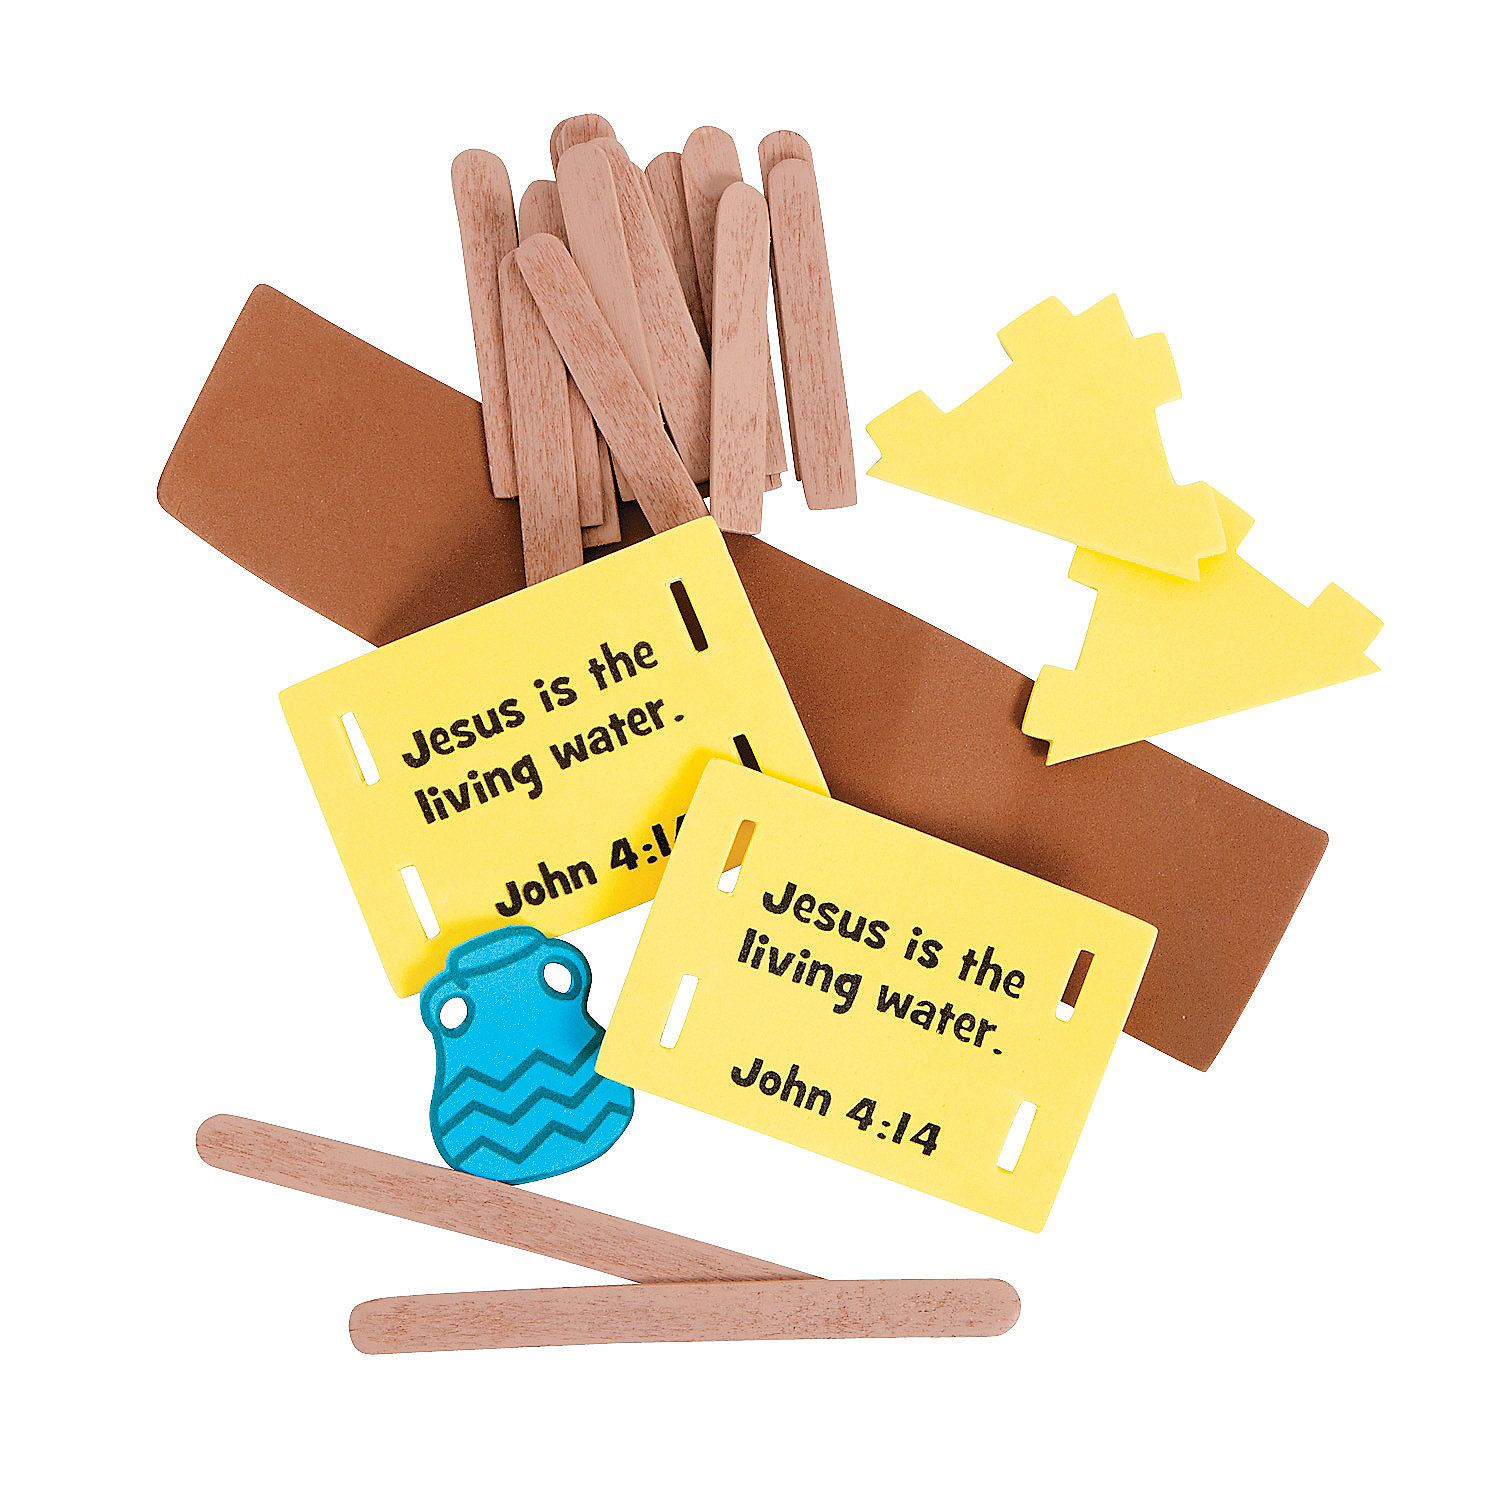 Vacation bible school crafts ideas - Find This Pin And More On Sunday School Quality Bible Crafts